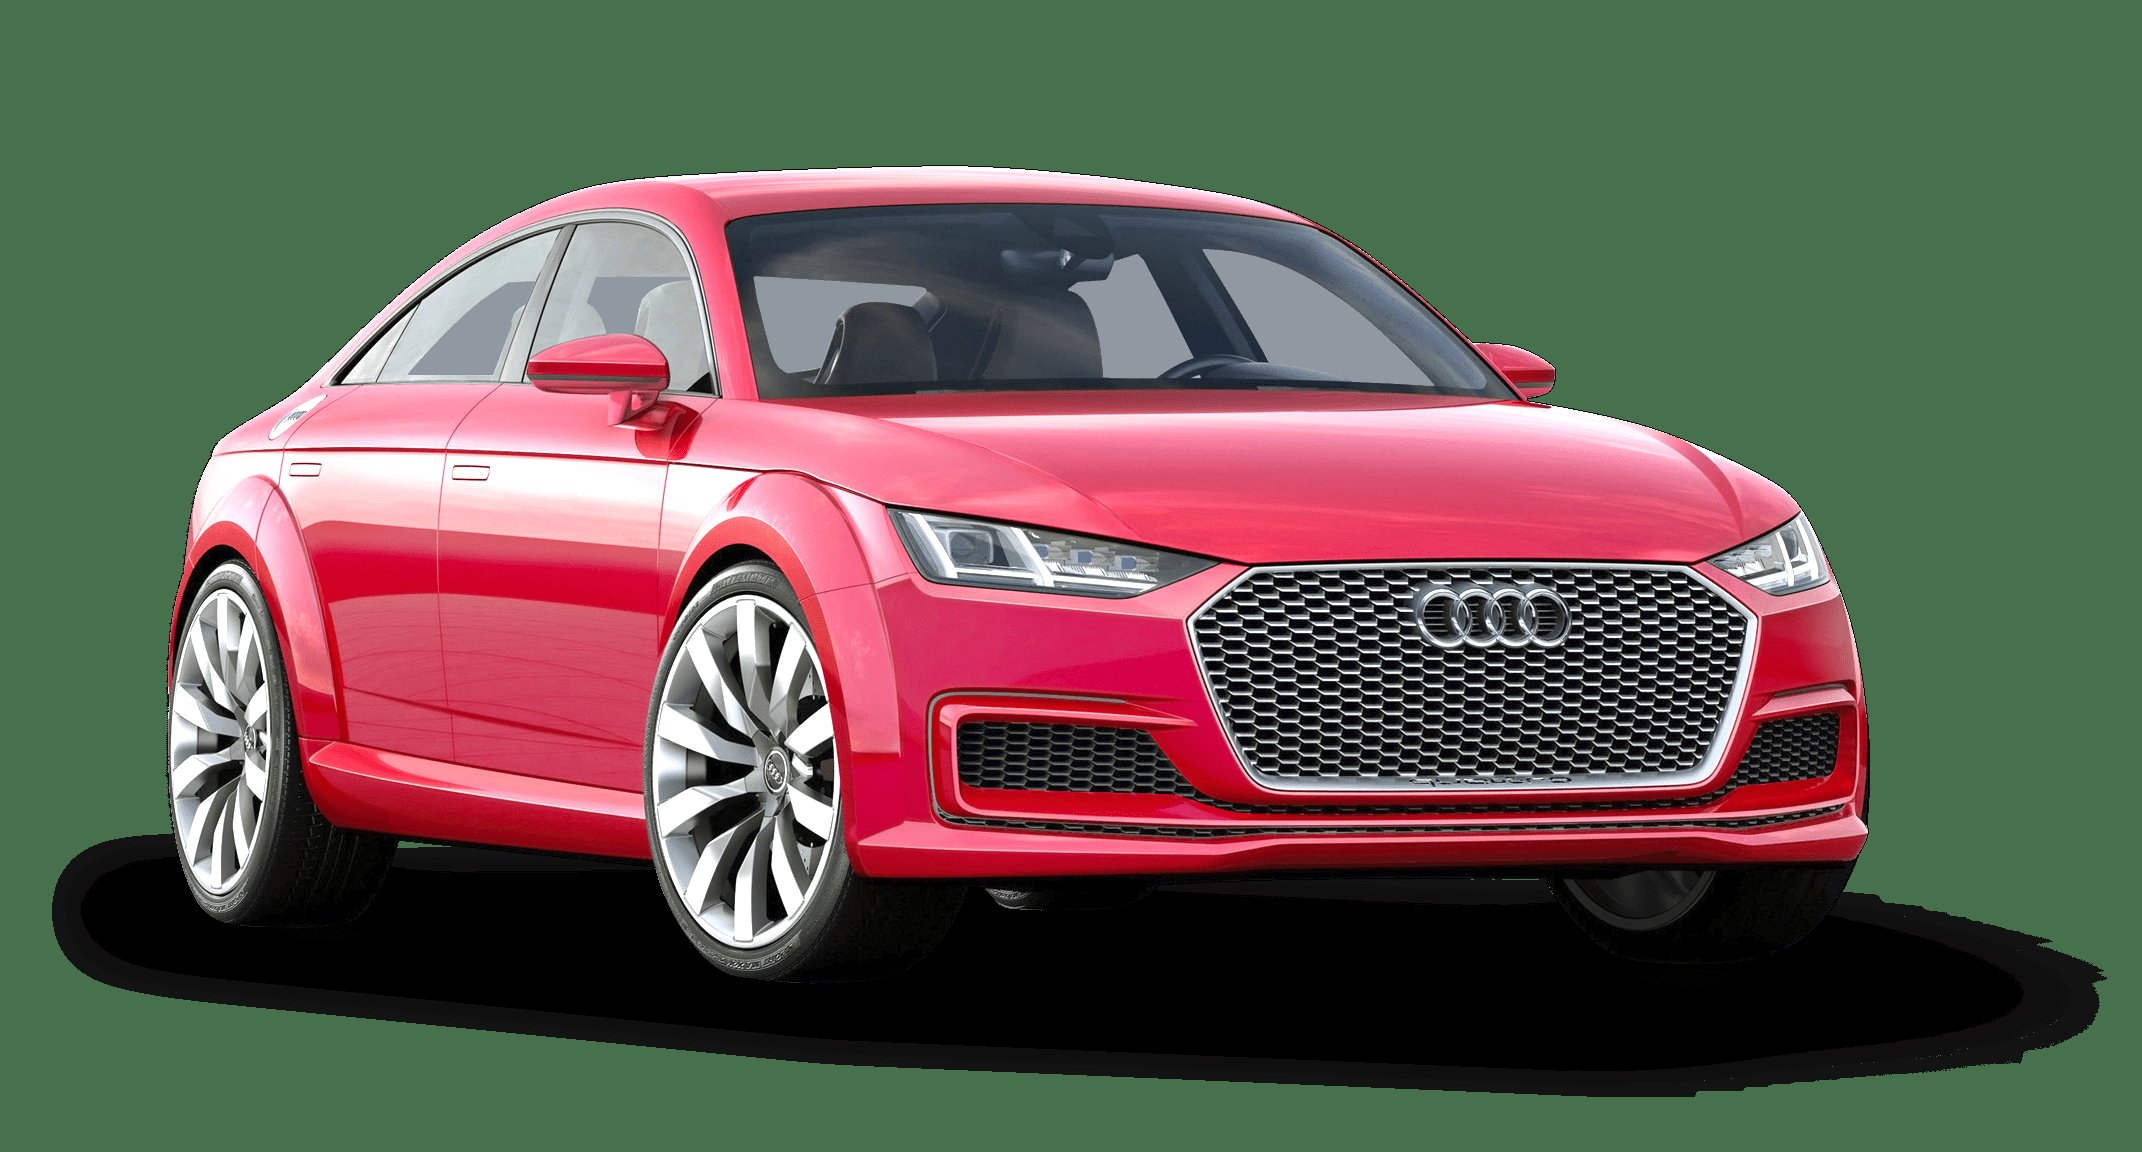 Latest Red Audi Tt Sportback Car Png Image Pngpix Free Download